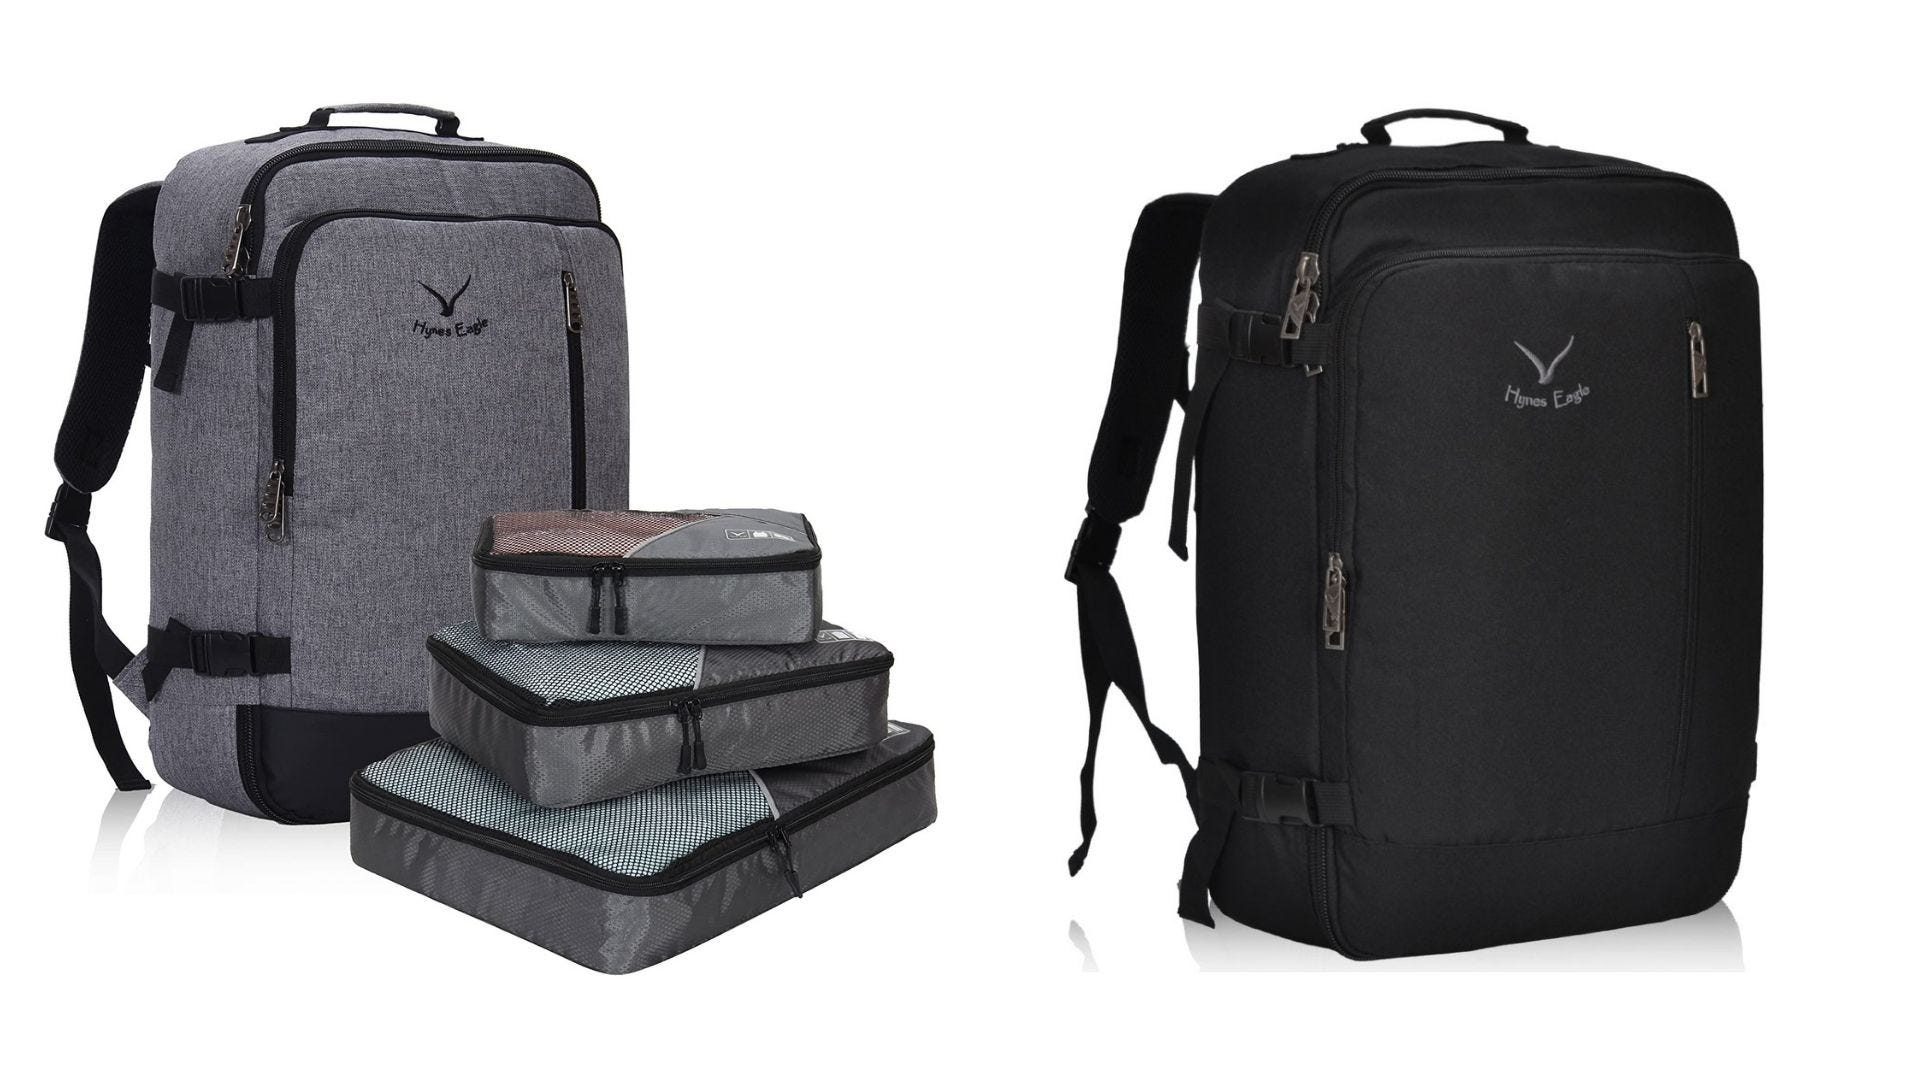 A gray backpack with packing cubes and a black backpack on a white background